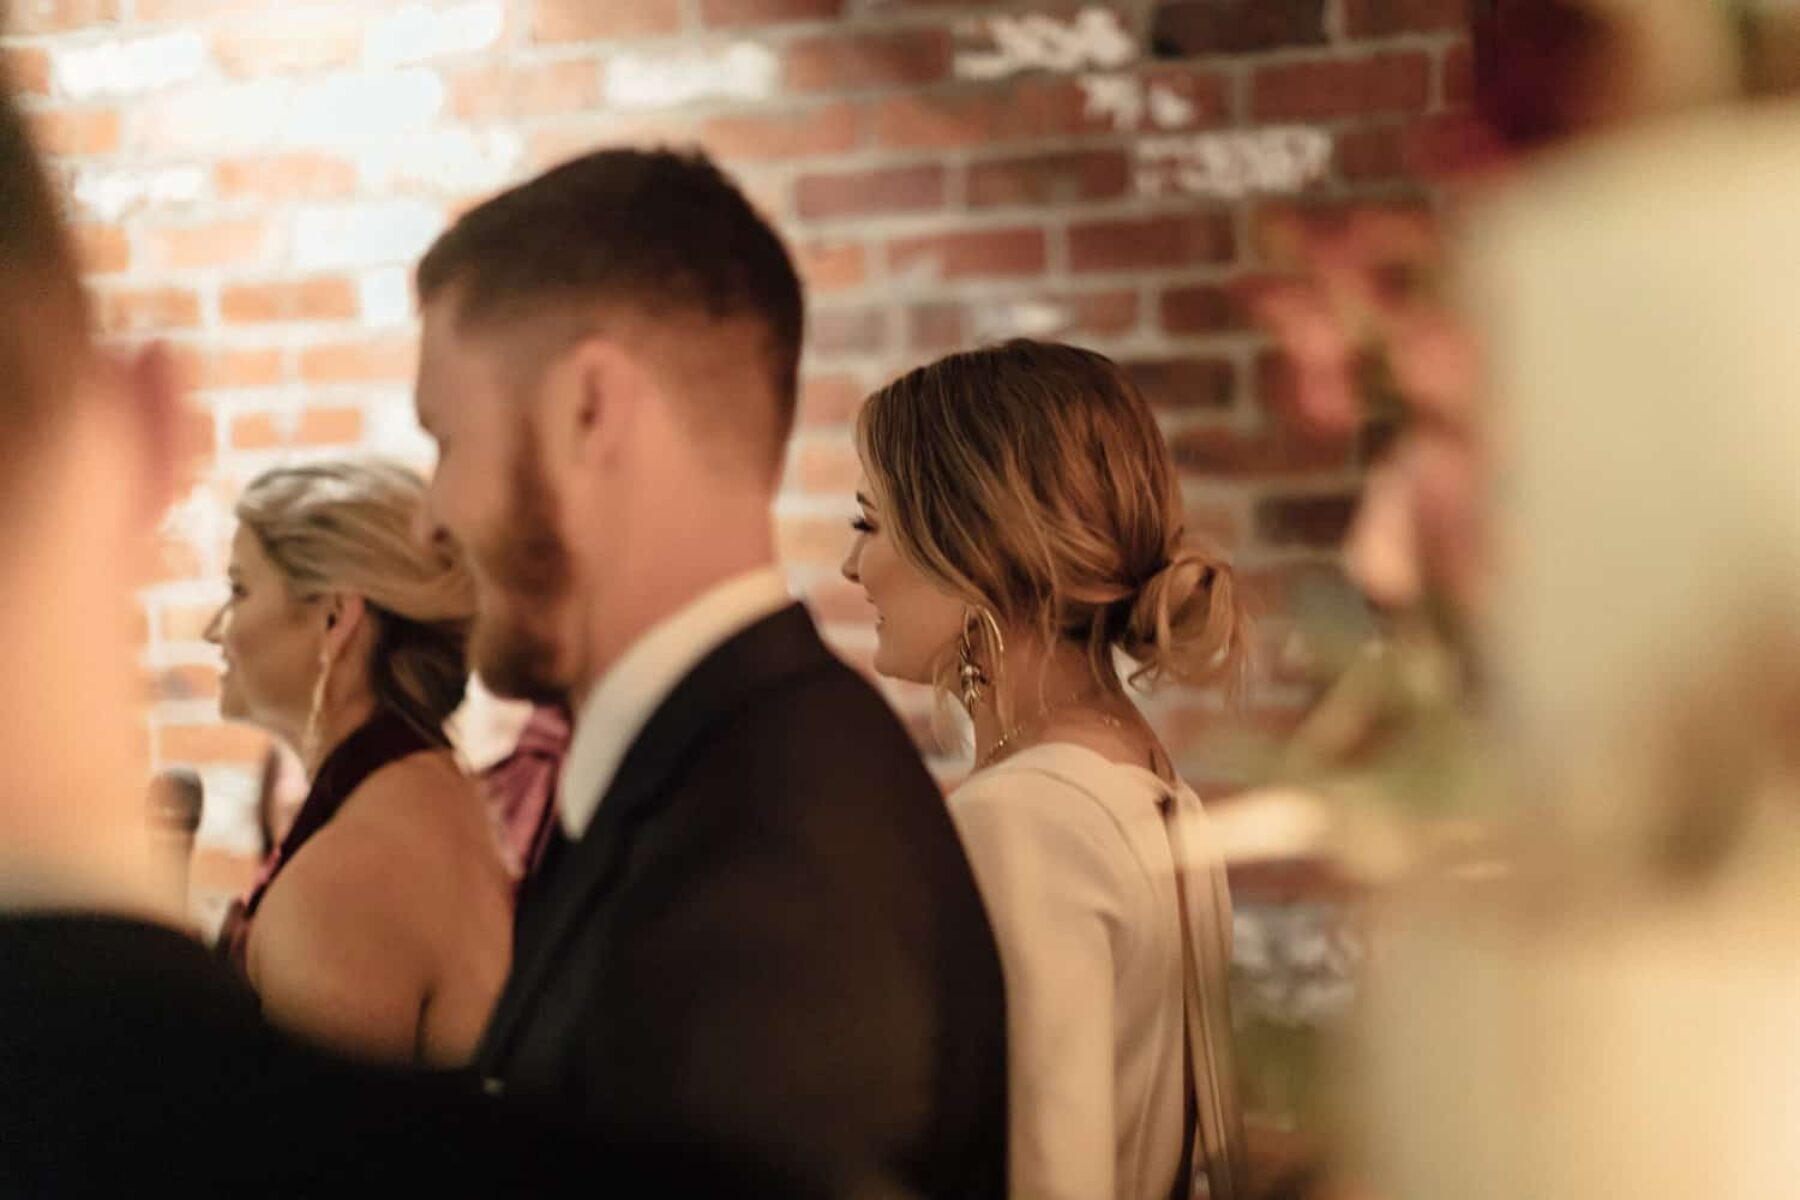 Modern, intimate Melbourne wedding at a Prahran cocktail bar - Photography by Jimmy Raper